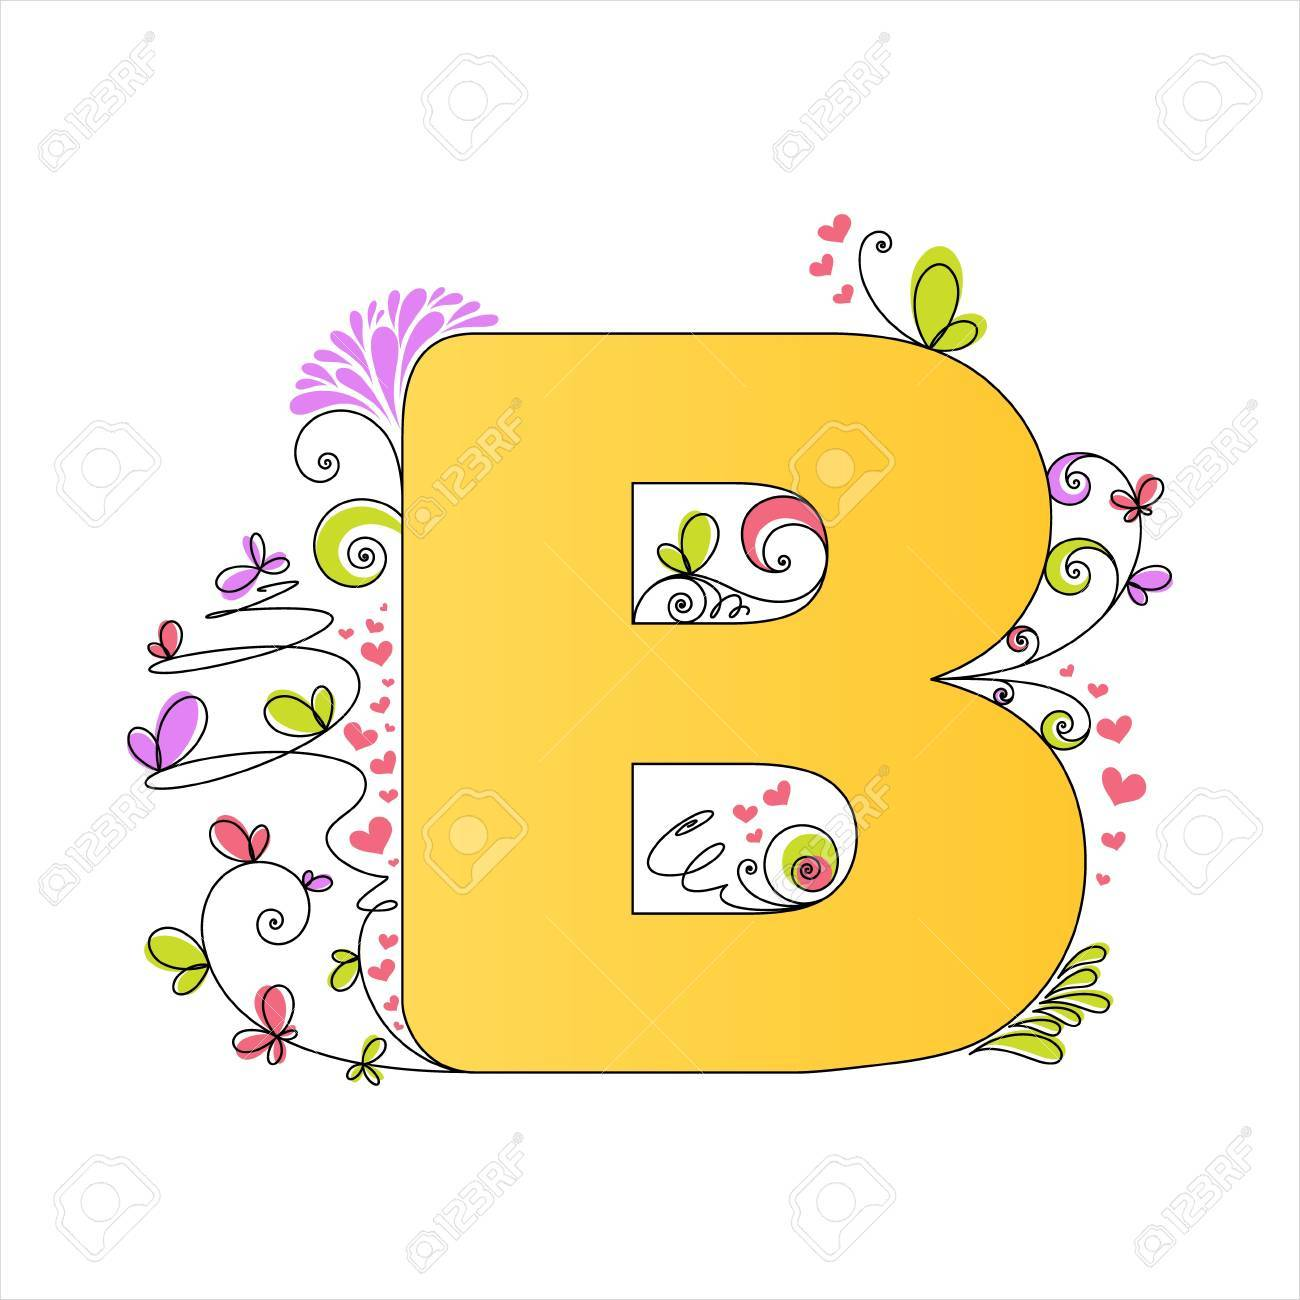 illustration of colorful floral alphabet letter b royalty free